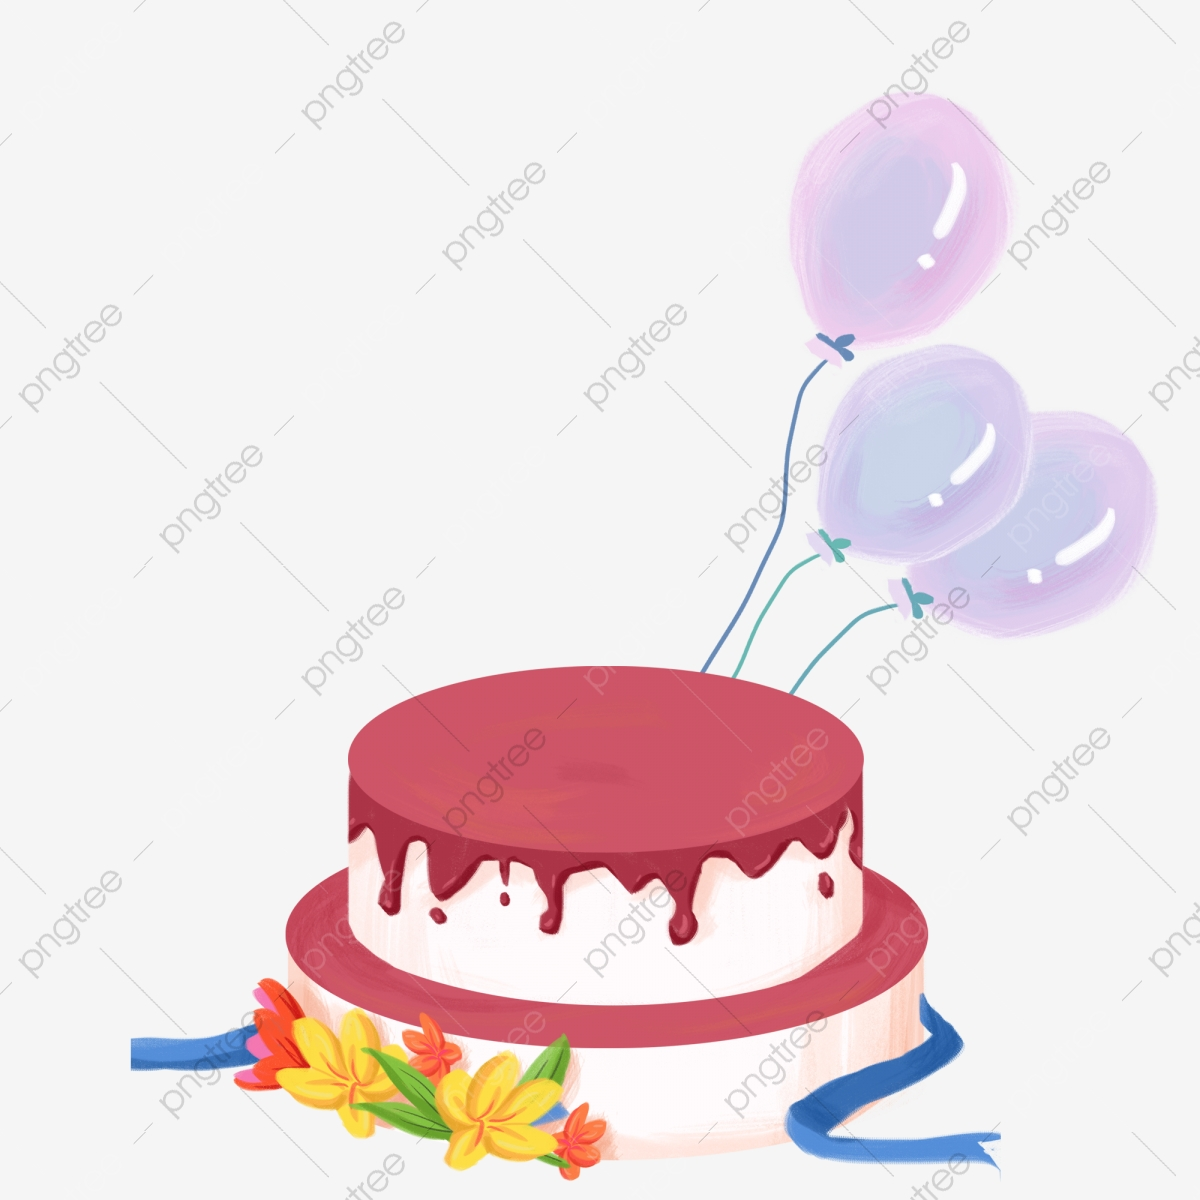 Astonishing Stylish Birthday Cake And Balloons Free Clipart Decorative Funny Birthday Cards Online Eattedamsfinfo